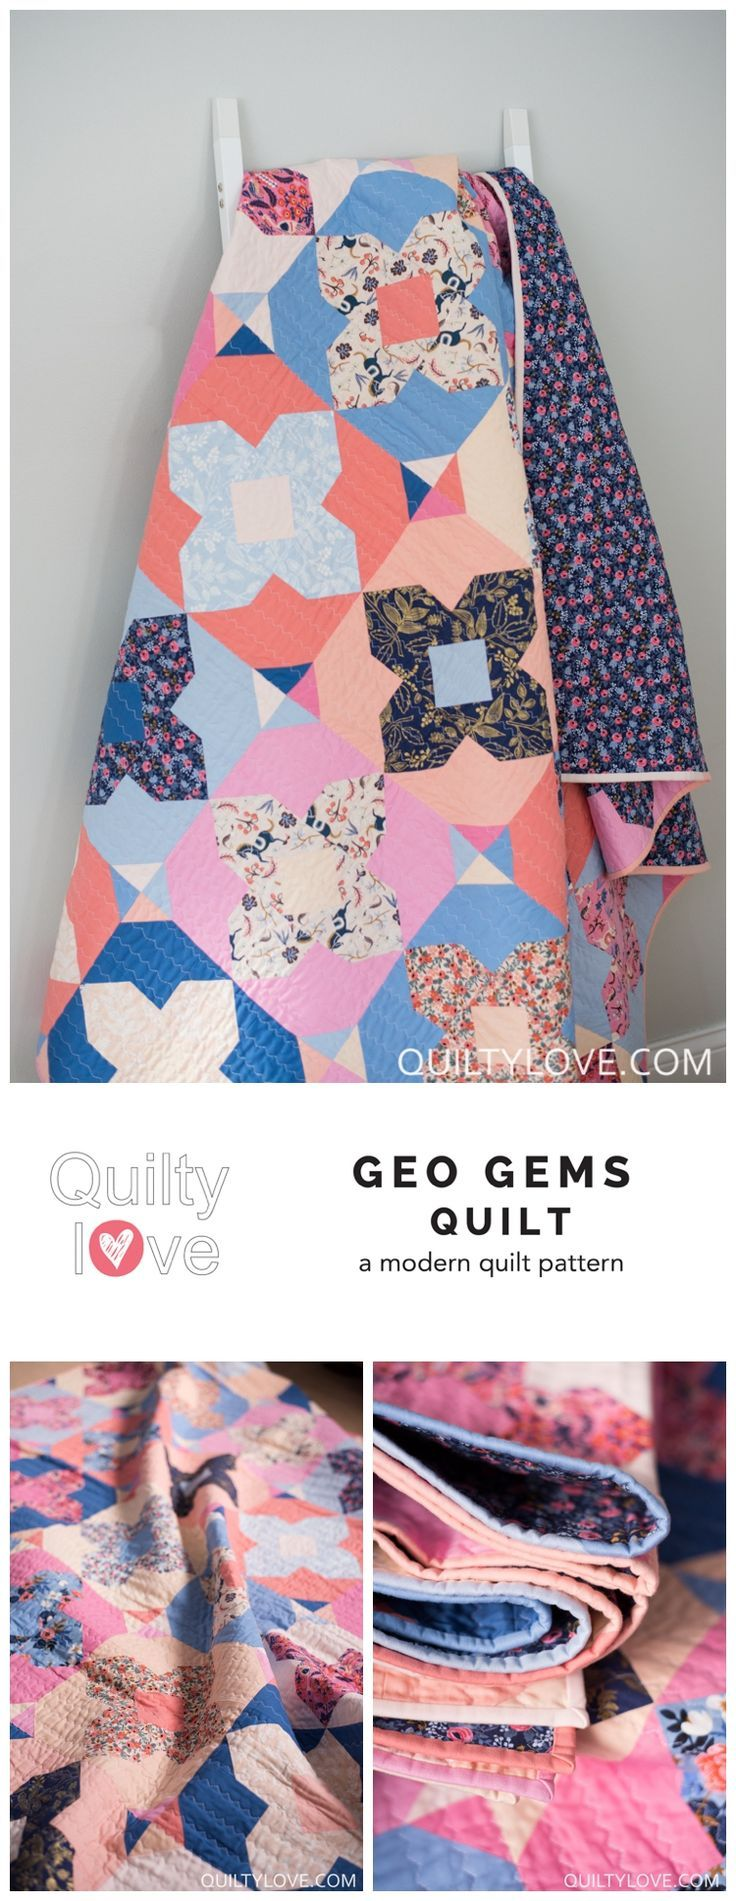 Geo Gems quilt pattern by Emily of Quiltylove.com.  Modern solids quilt pattern using Rifle paper co fabric by Cotton and Steel.  Fat quarter friendly quilt pattern.